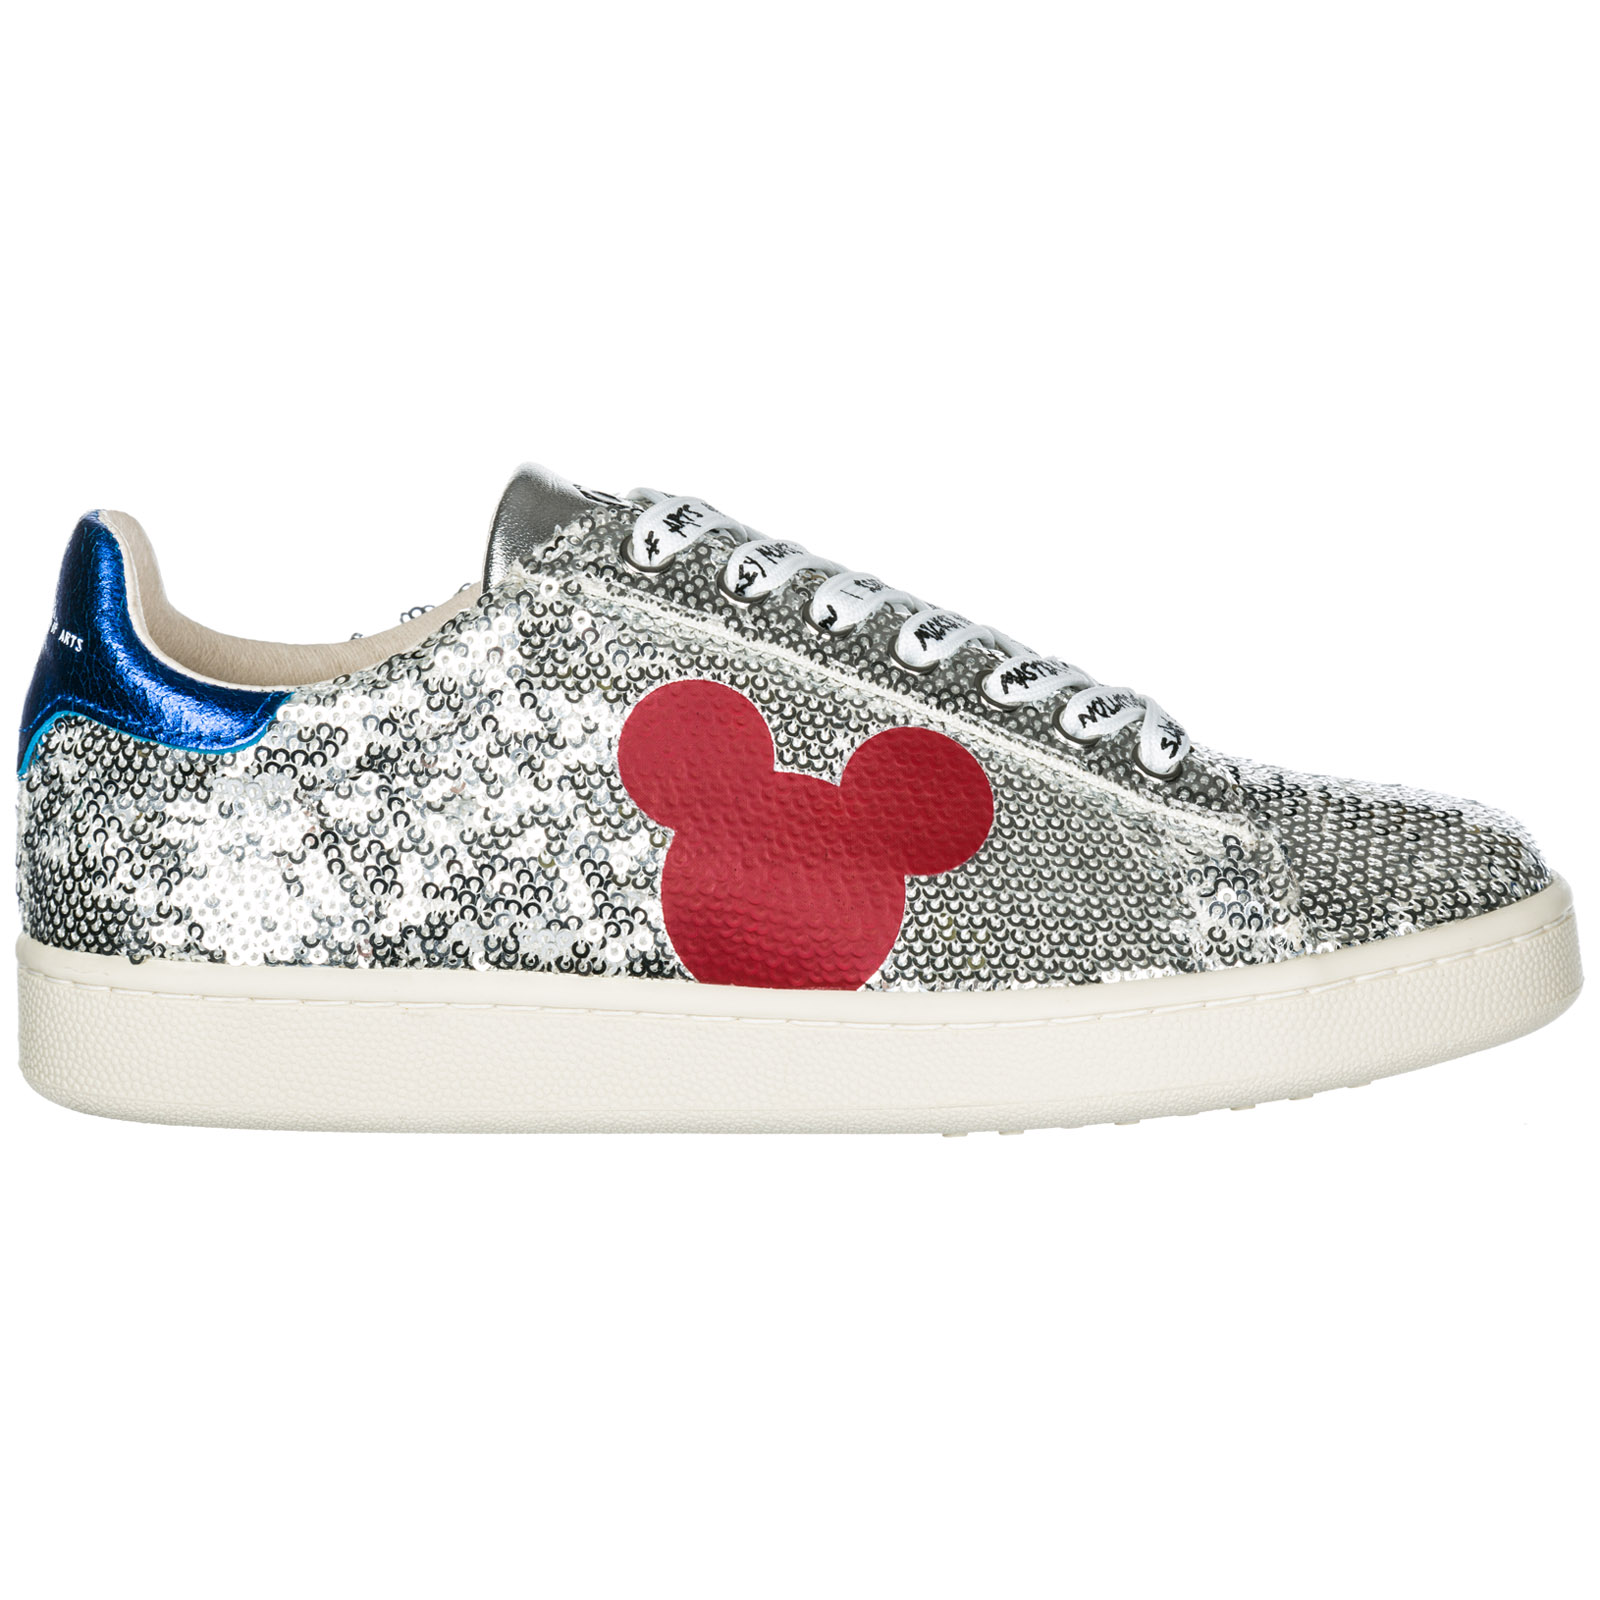 Sneakers Moa Master of Arts Disney Mickey Mouse MD326 silver ... 07a22cf405a